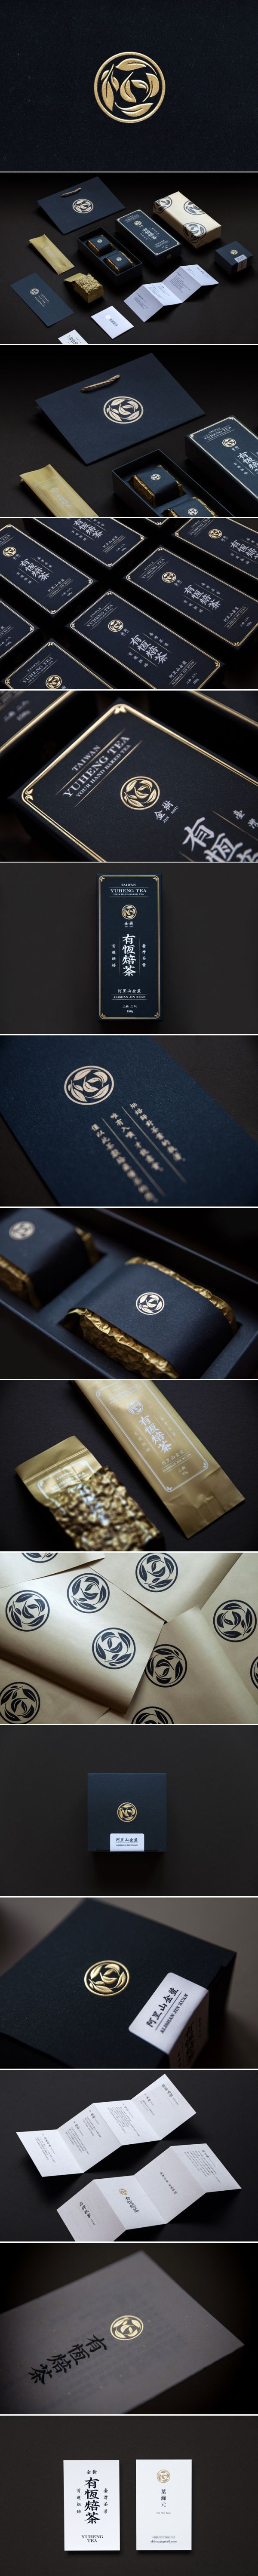 Yuheng Tea - Brand identity & Packaging Design by Onion Design Associates. If you like UX, design, or design thinking, check out theuxblog.com